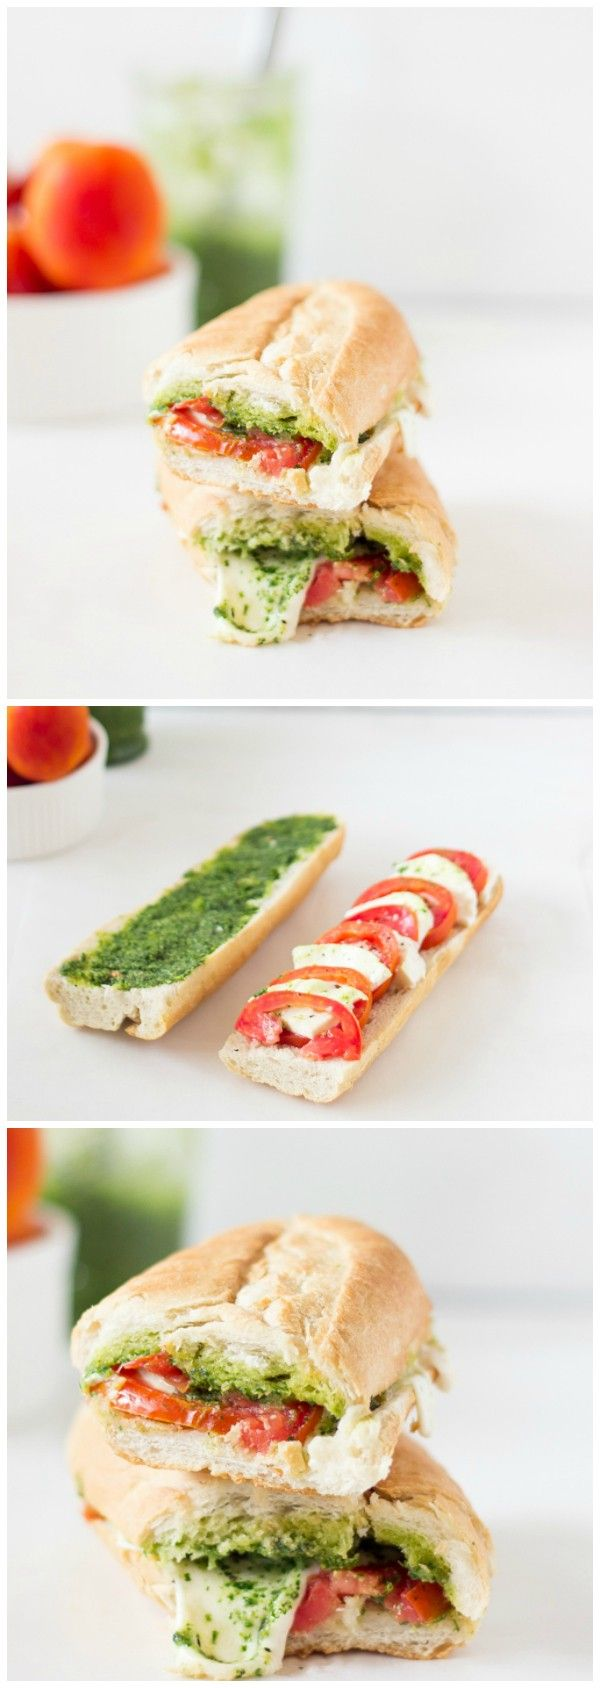 Get the recipe Caprese Sandwich Parsley Pesto @recipes_to_go